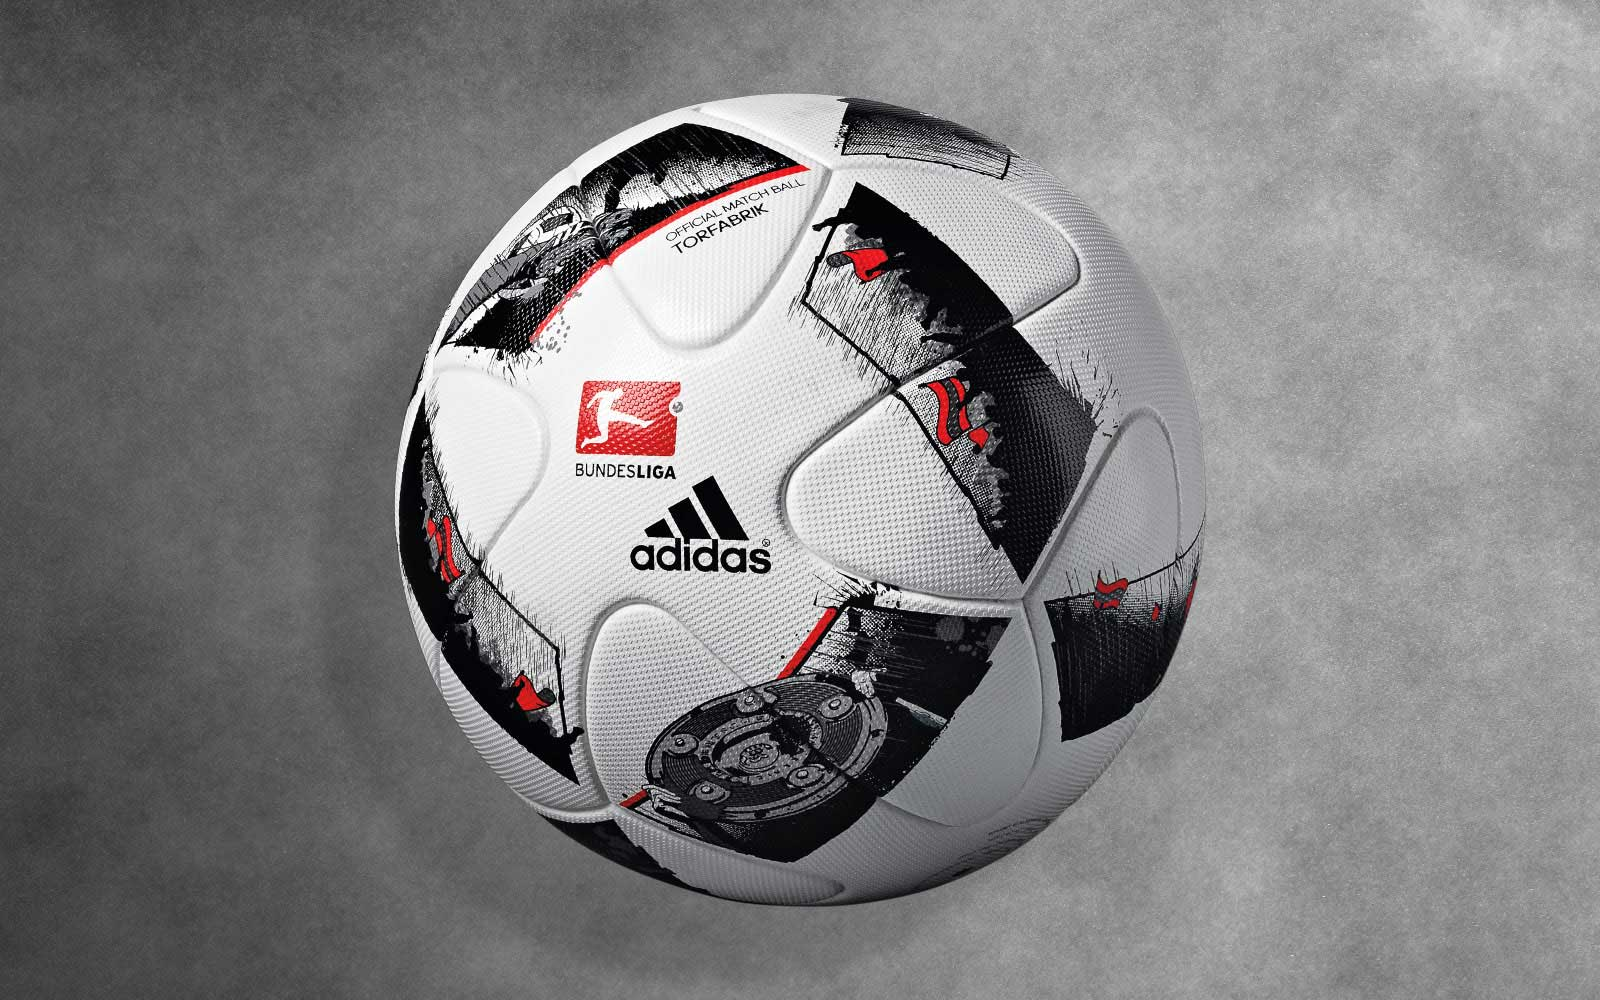 adidas torfrabik 16 17 bundesliga fu ball ver ffentlicht nur fussball. Black Bedroom Furniture Sets. Home Design Ideas